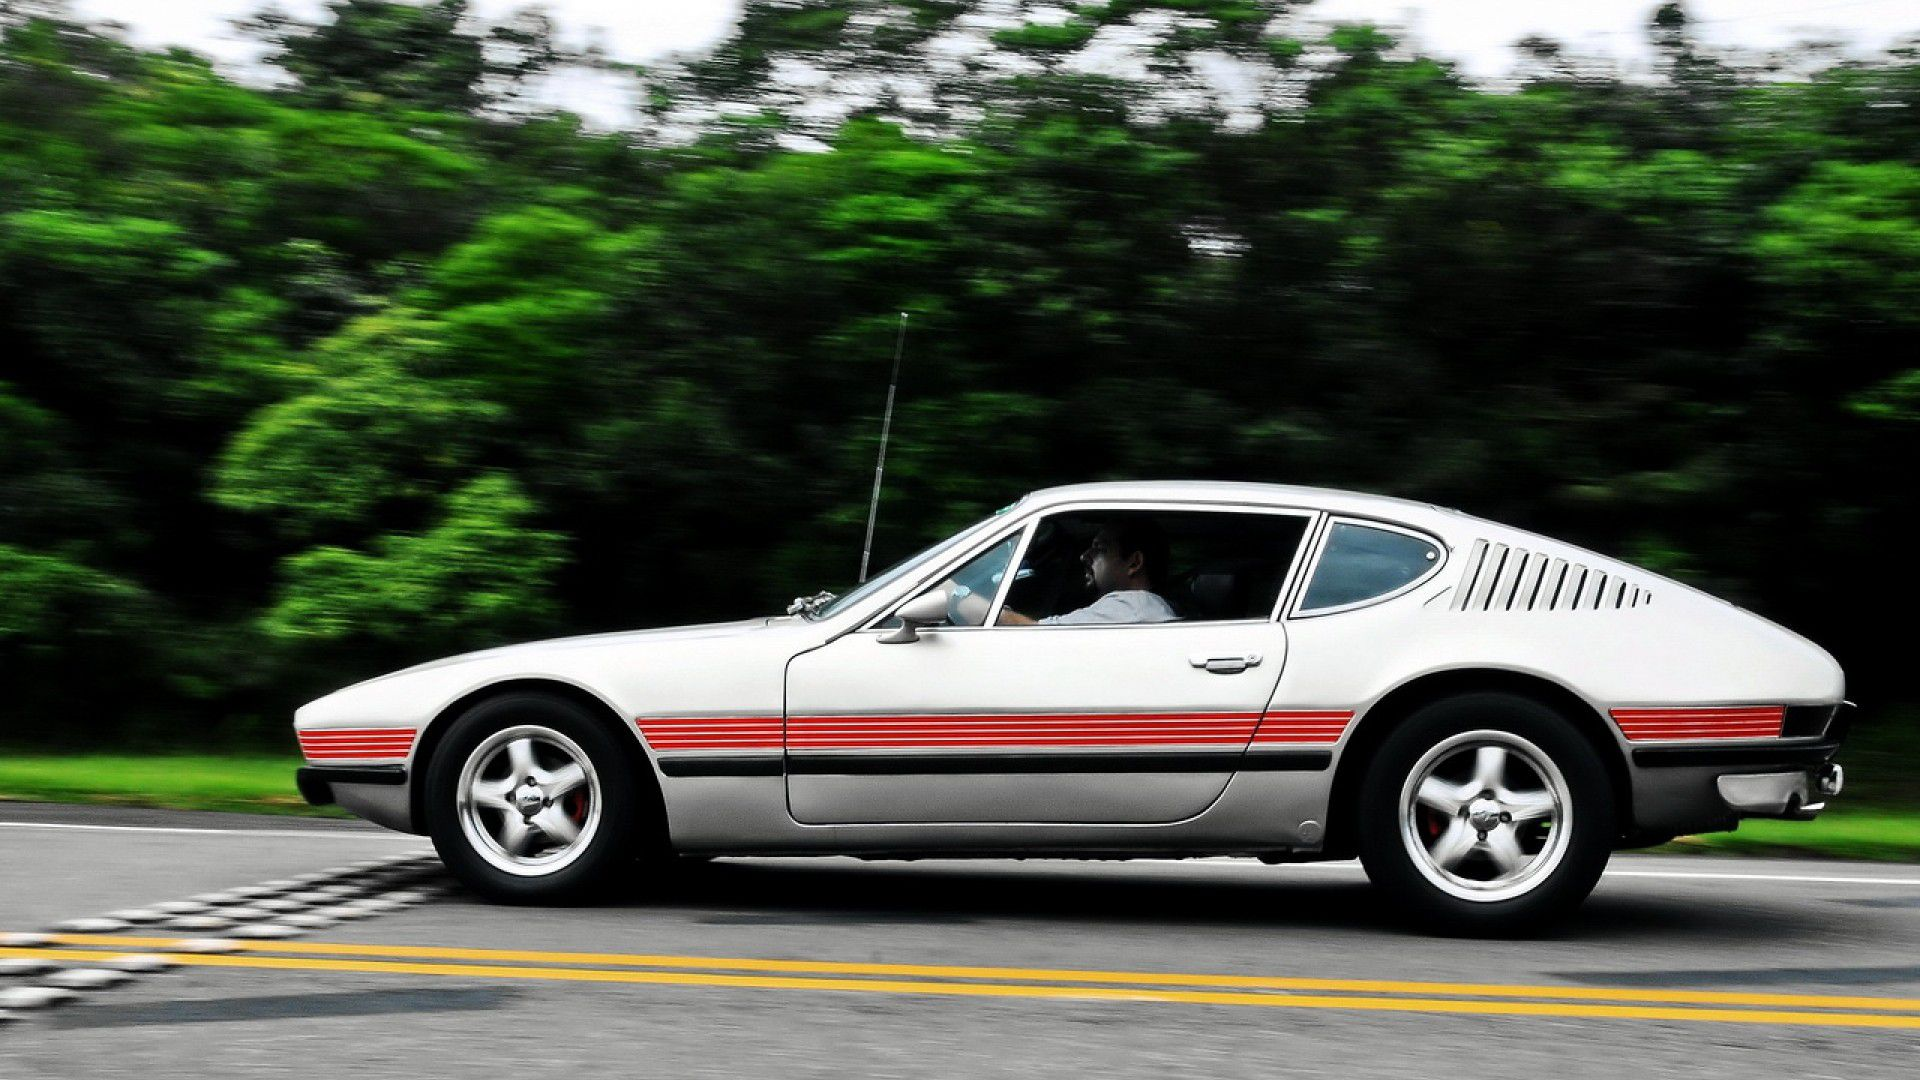 Volkswagen Sp2 187 Definitive List Cars